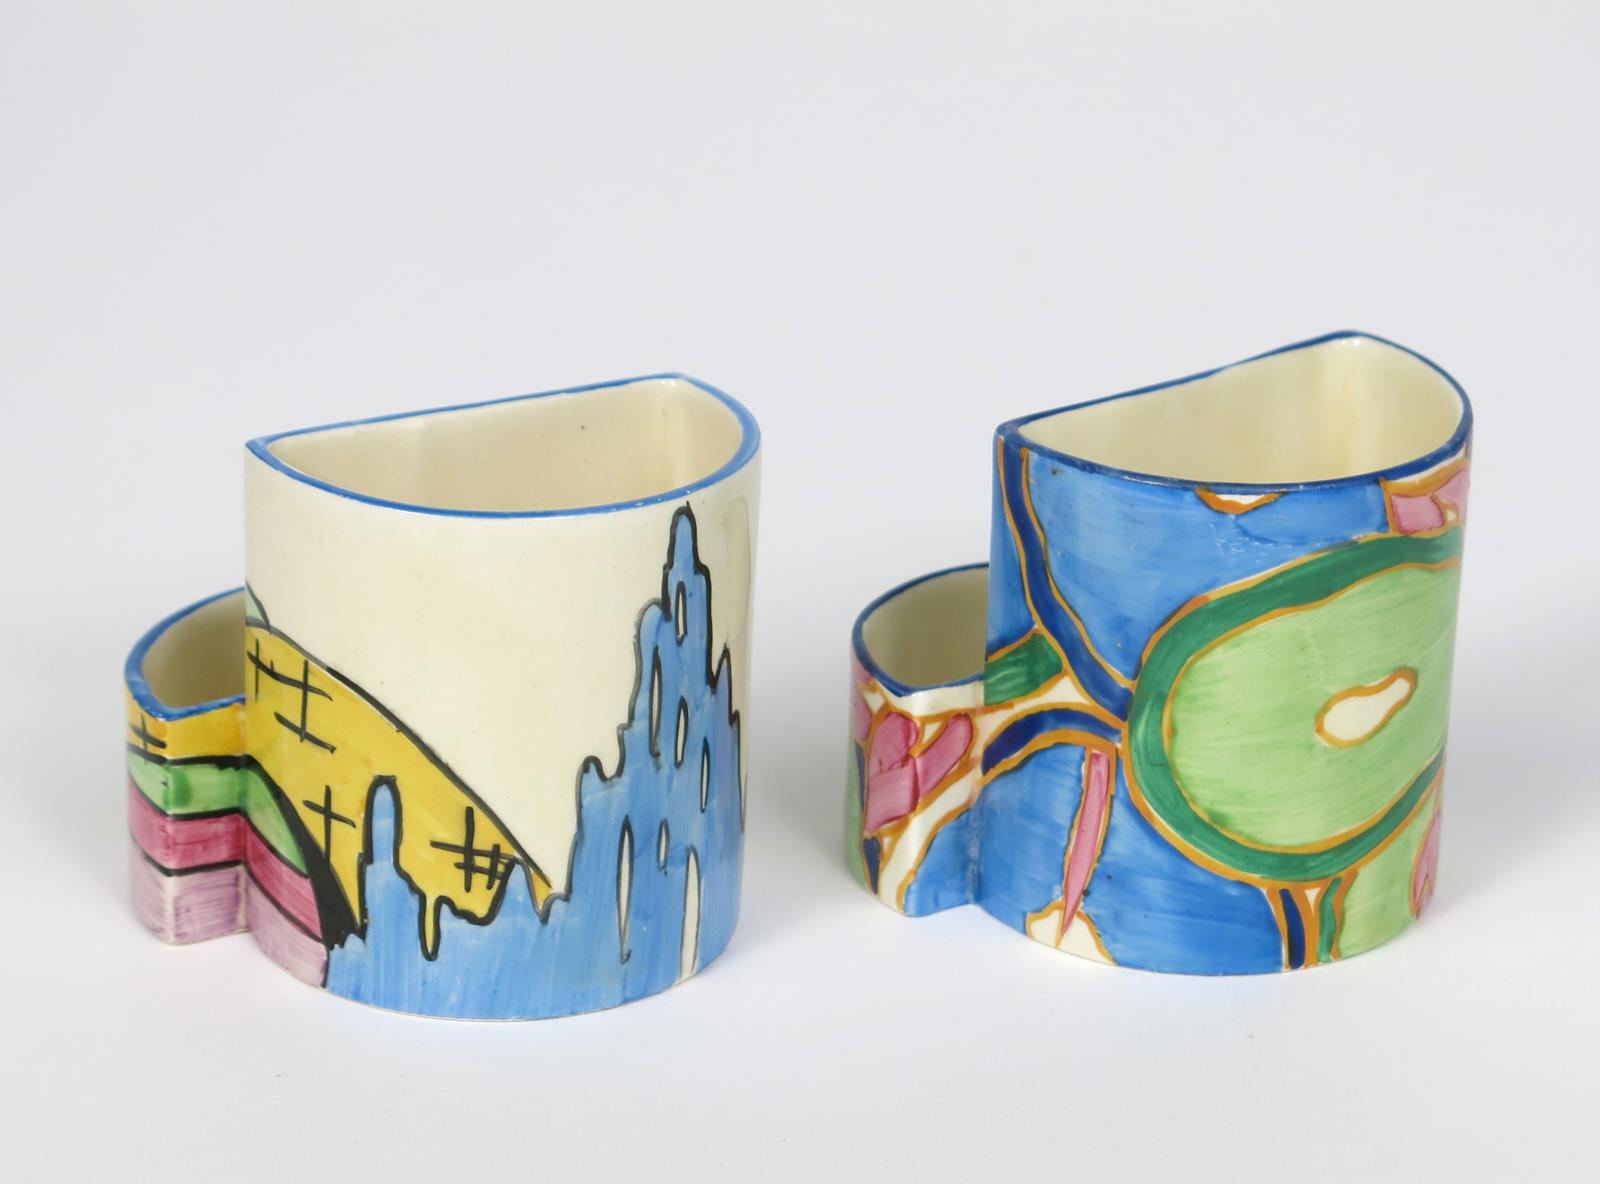 'Pink Roof Cottage' a Clarice Cliff Fantasque Bizarre 463 Cigarette and match holder, painted in - Image 2 of 2